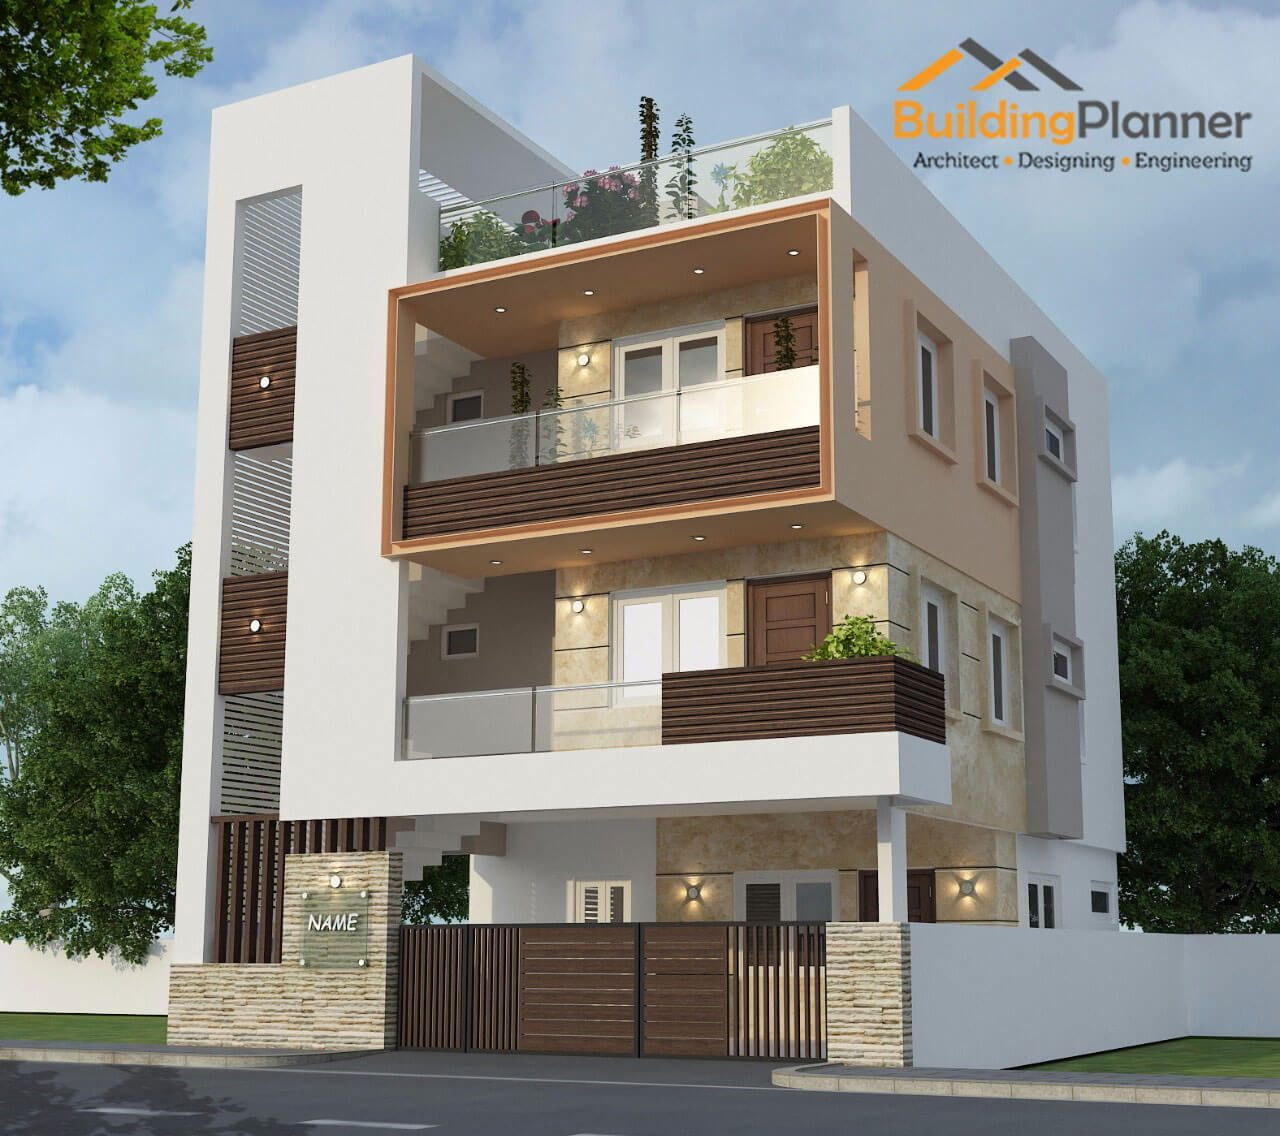 Home Design Ideas Bangalore: Home Plan / House Plan Designers Online In Bangalore